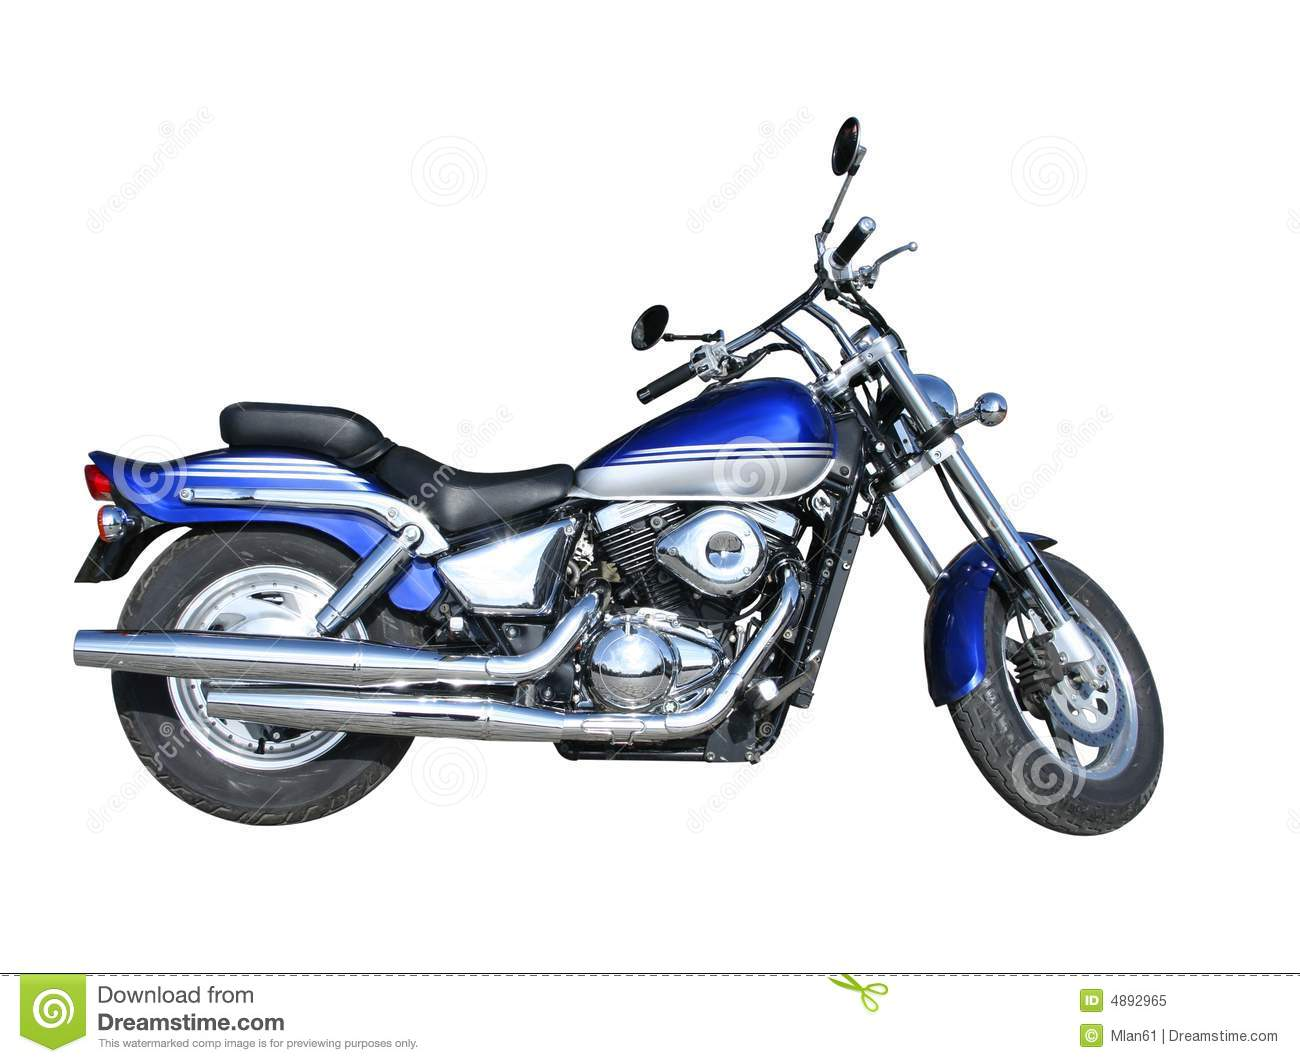 Blue motorcycle stock image. Image of motorcycle, travel.